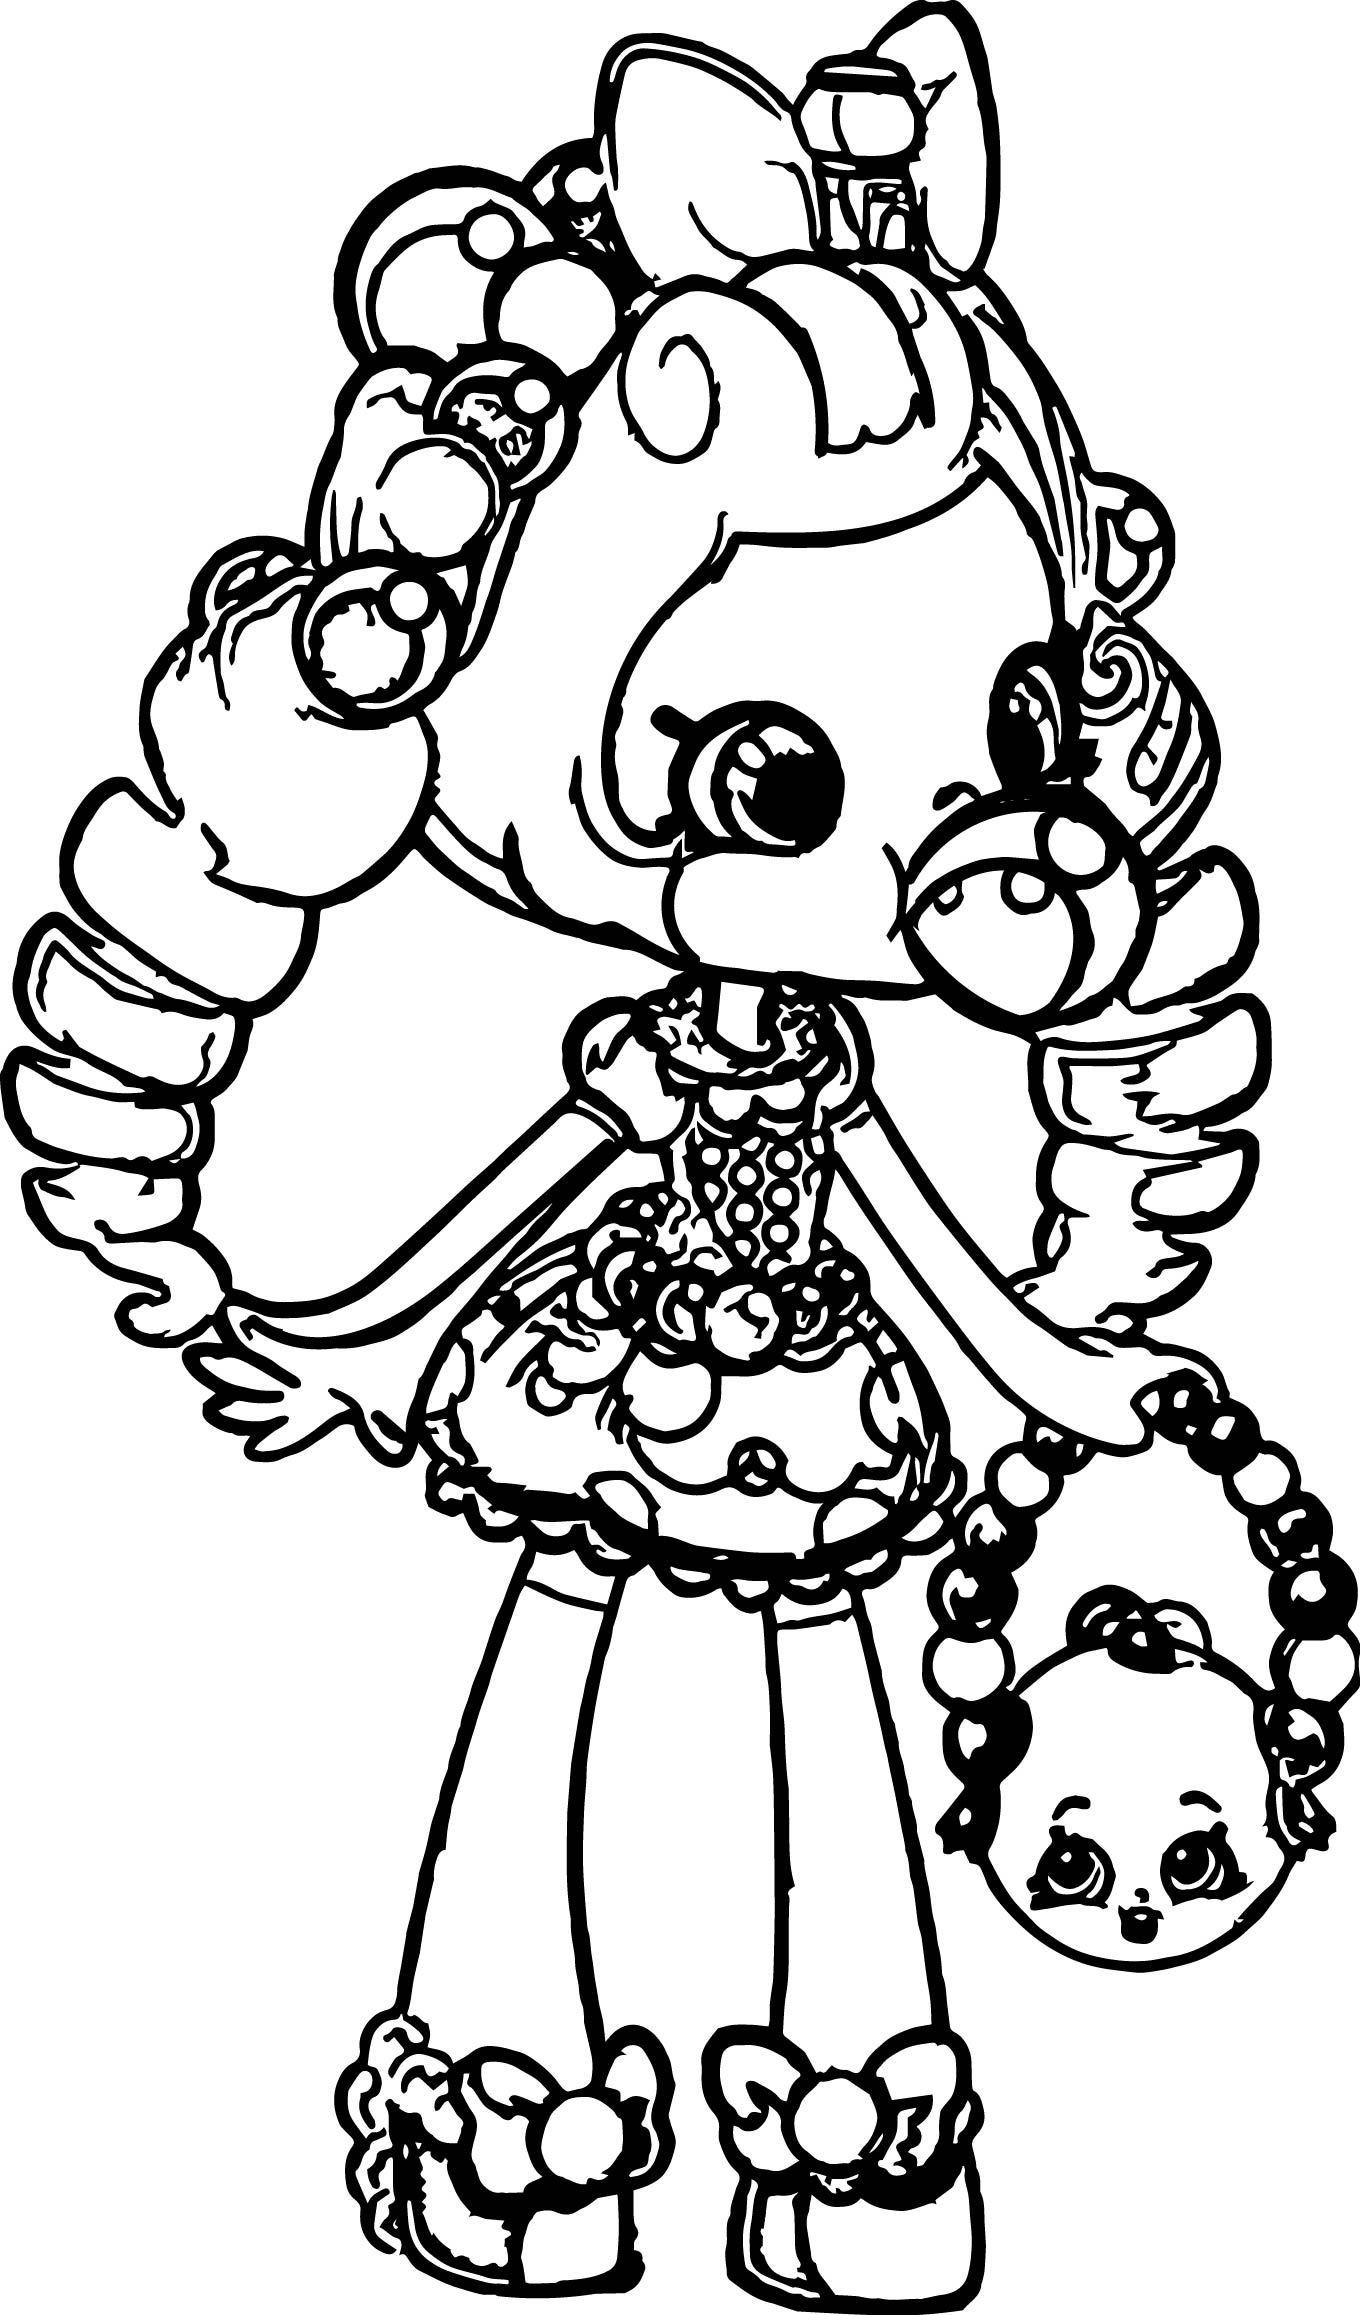 Shopkins Balloon Girl Coloring Page Wecoloringpage